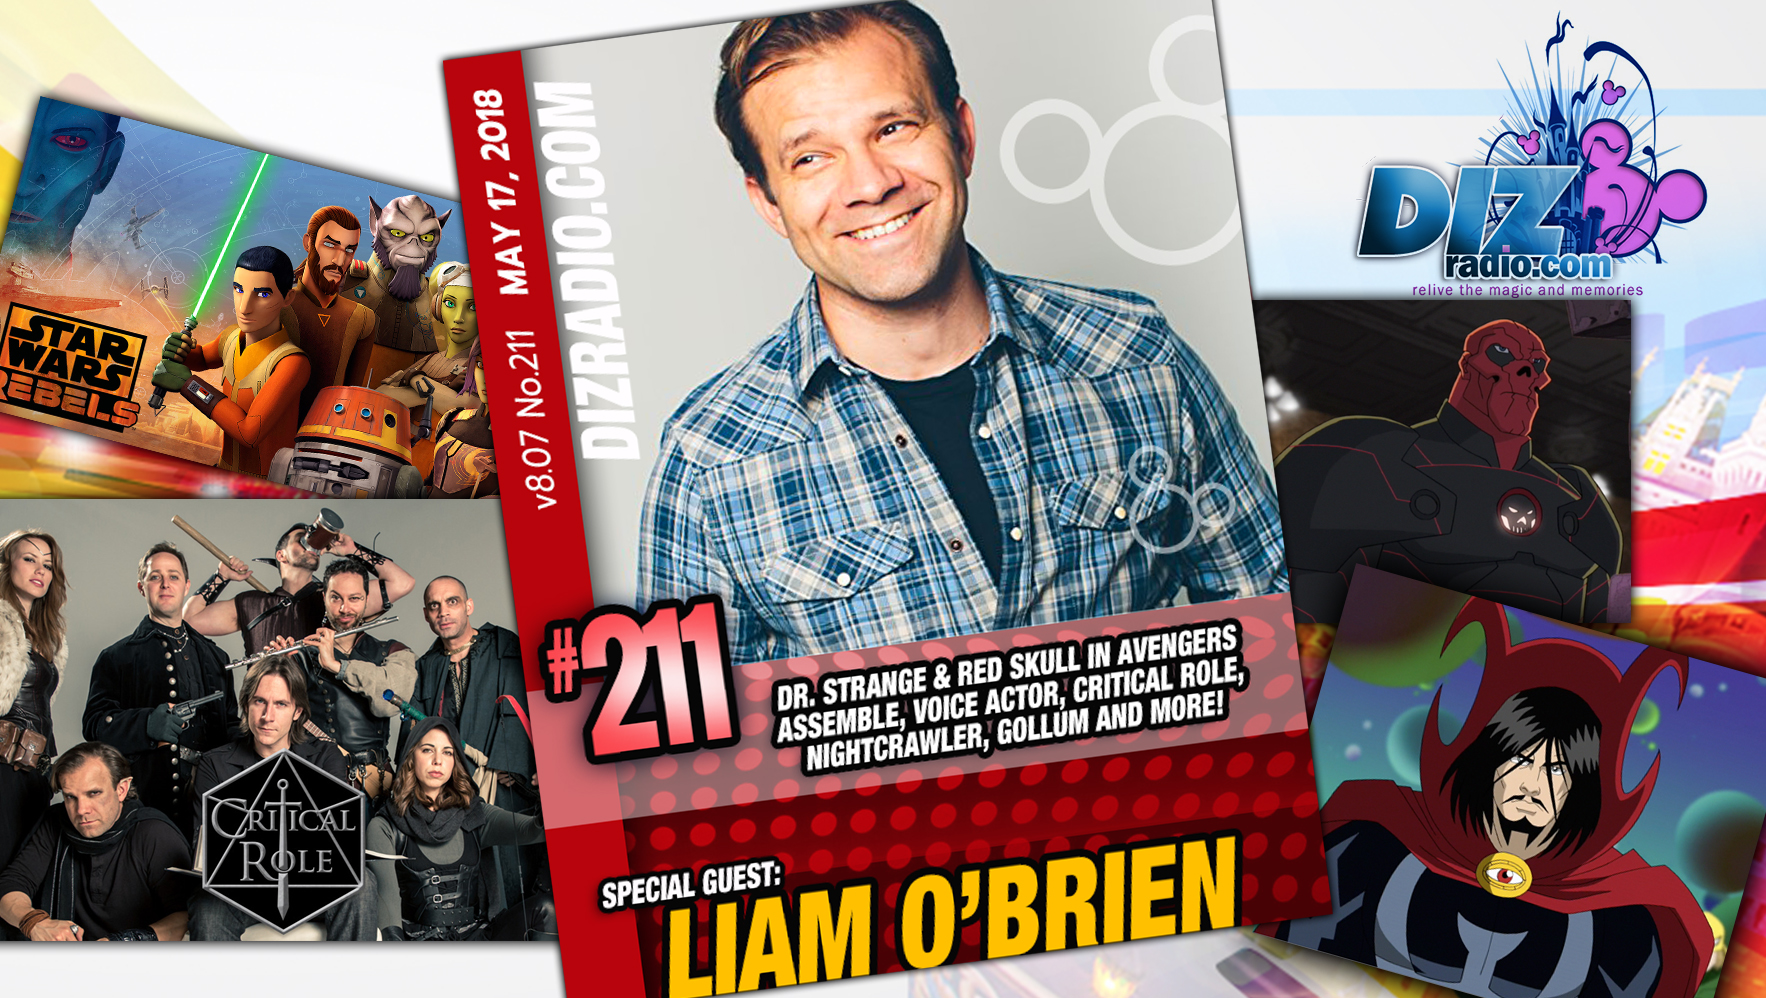 DisneyBlu's DizRadio Disney on Demand Show #211 w/ Special Guest LIAM O'BRIEN (Voice Actor as Dr. Strange and Red Skull on Avengers Assemble, Star Wars Rebels, Critical Role, Gollum, and more)